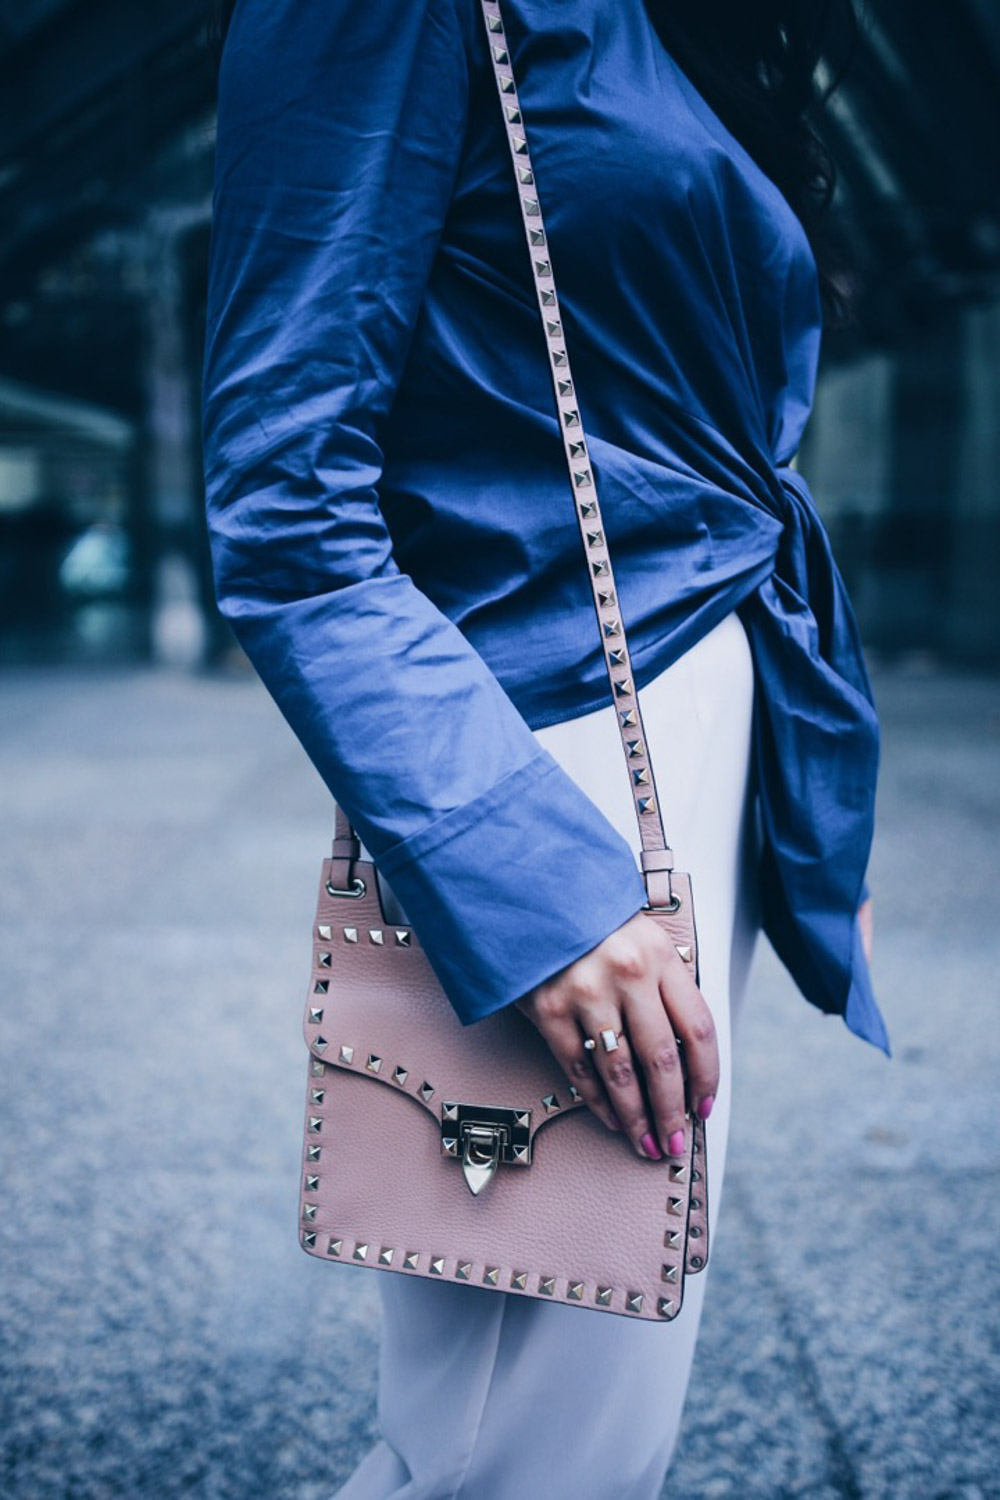 something-new-something-blue-tied-knot-top-zara-blush-pink-pants-2